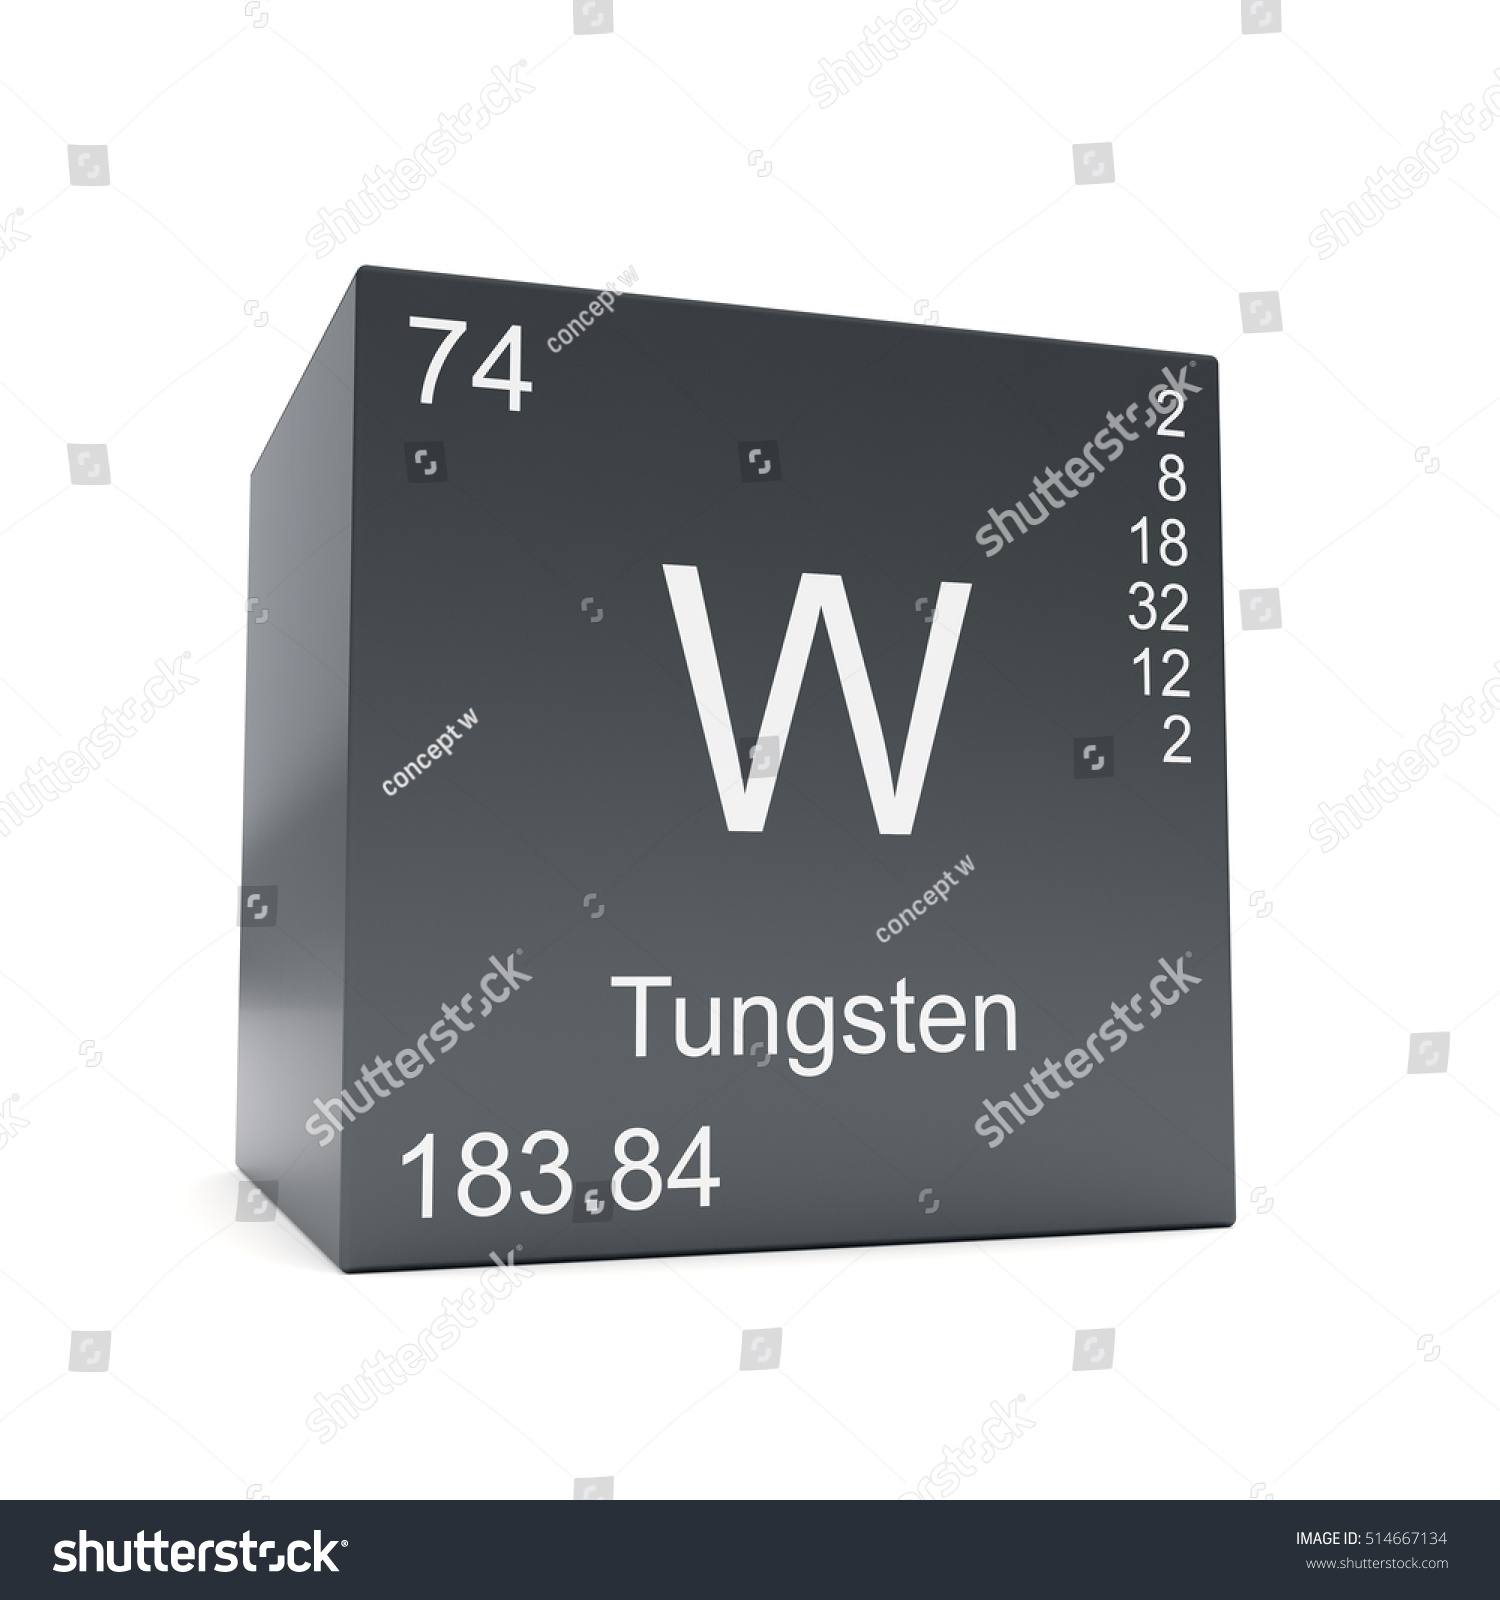 Tungsten Chemical Element Symbol Periodic Table Stock Illustration